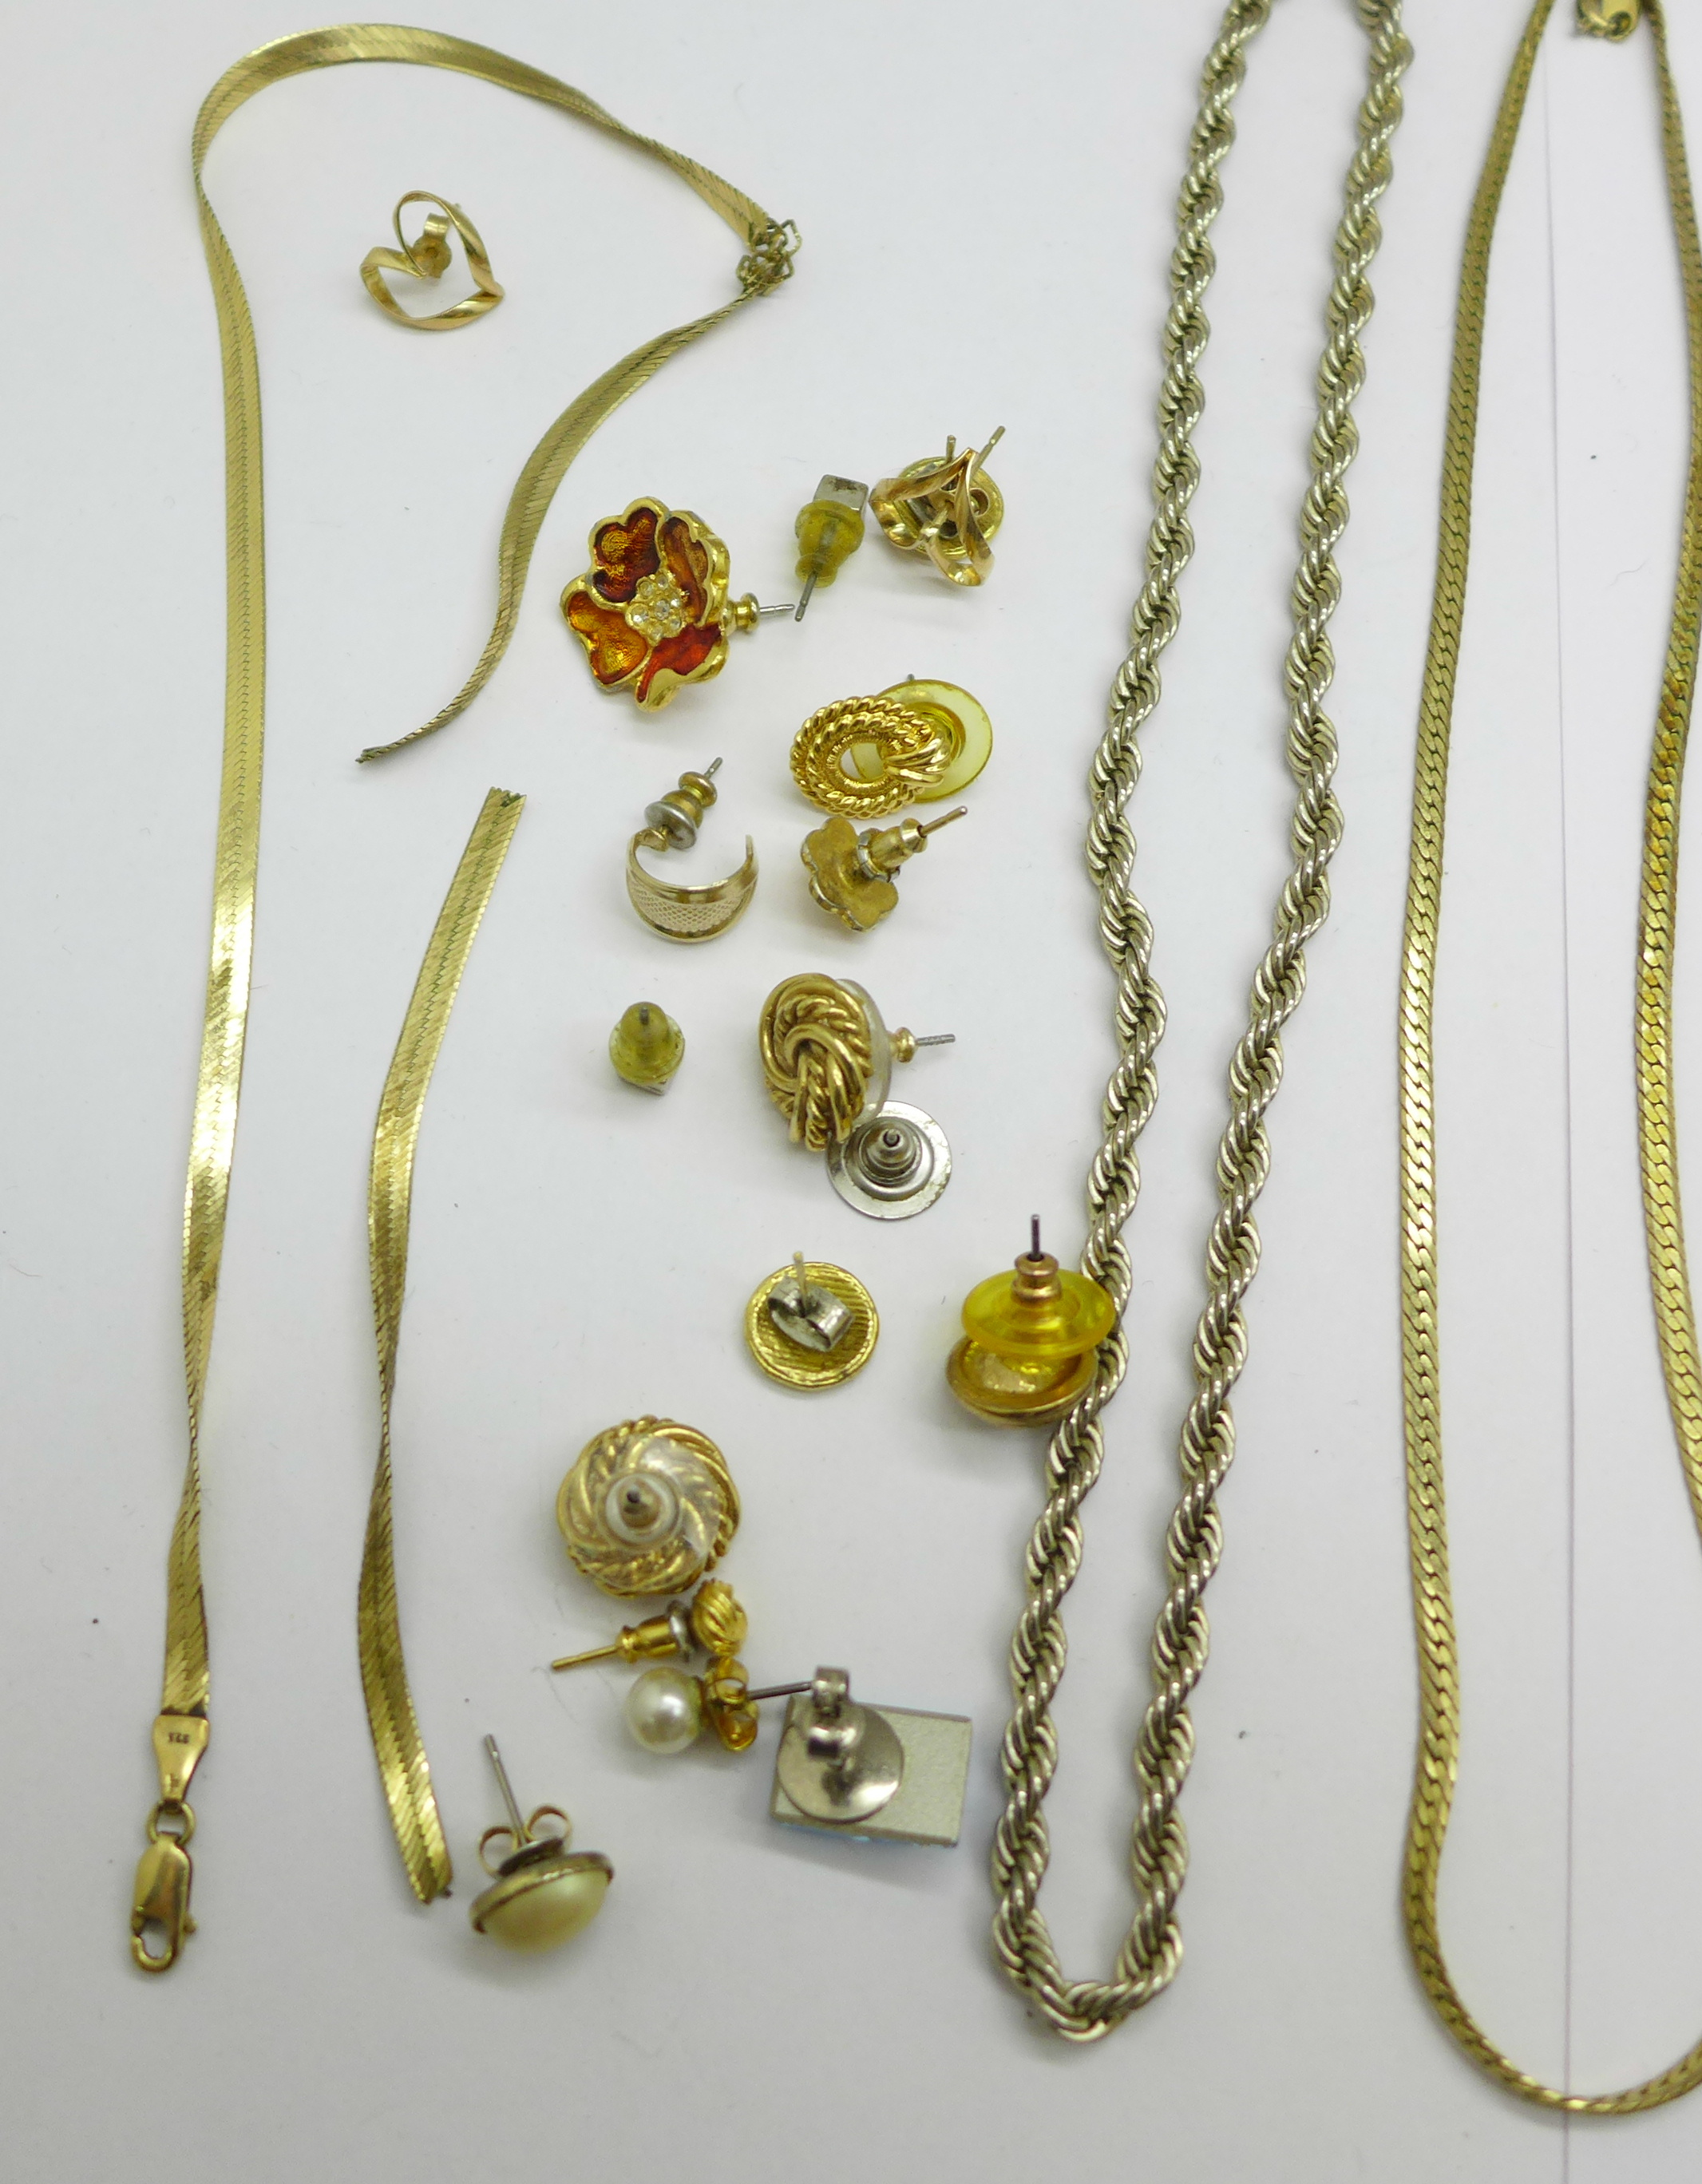 A 9ct gold chain, a/f, and a single 9ct gold earring and costume jewellery, a/f, 5.1g of 9ct gold - Image 2 of 3